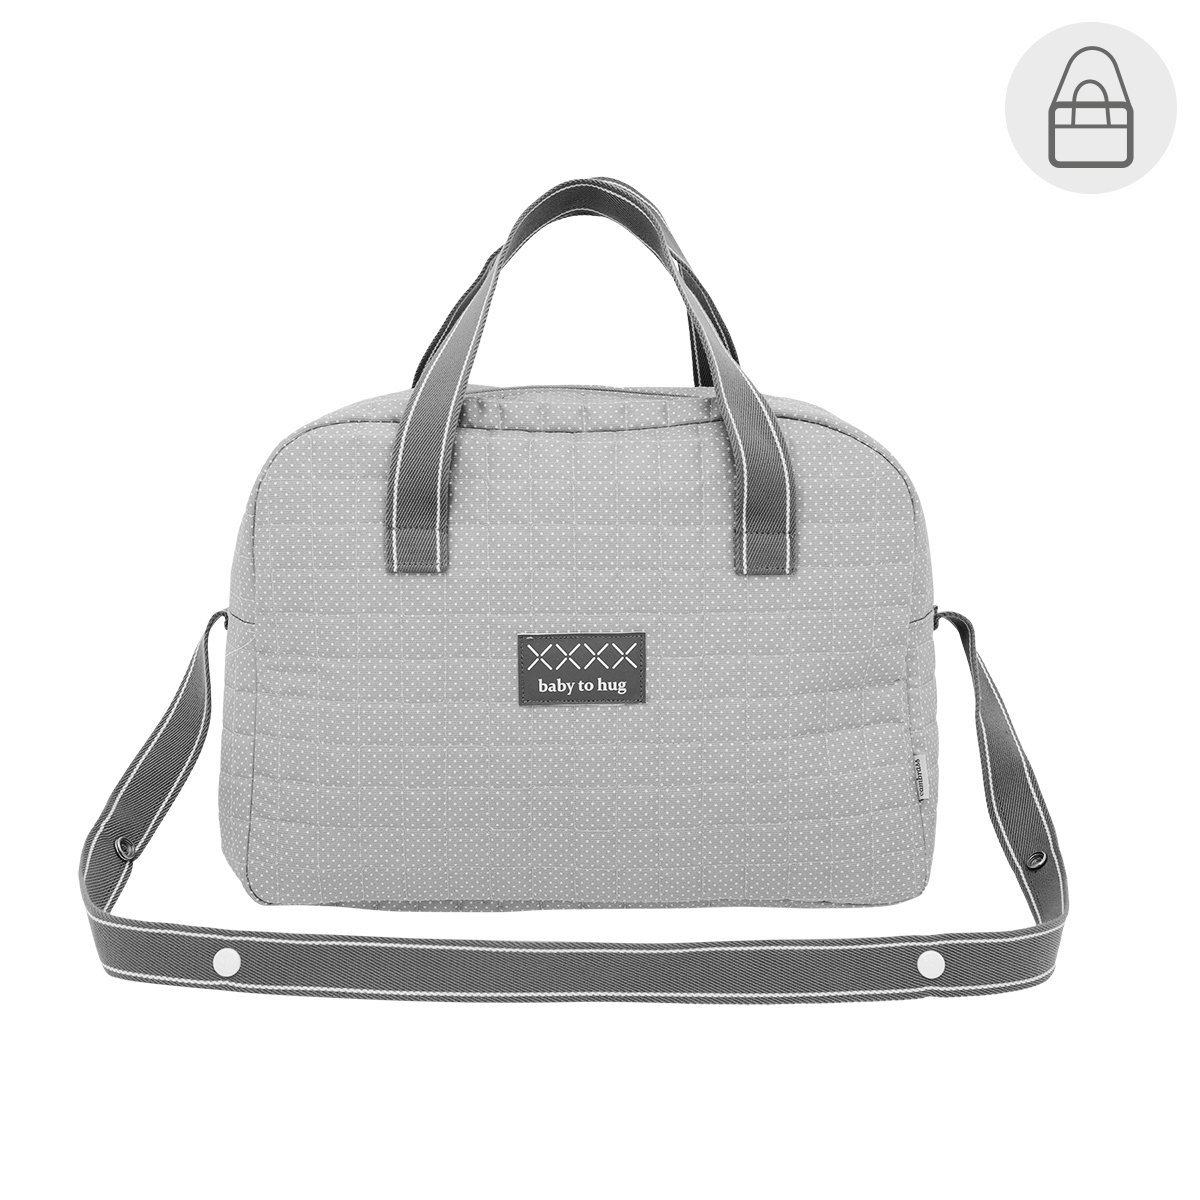 Bolso Maternal Prome Pic Gris 18X44X33 Cm Cambrass 41388